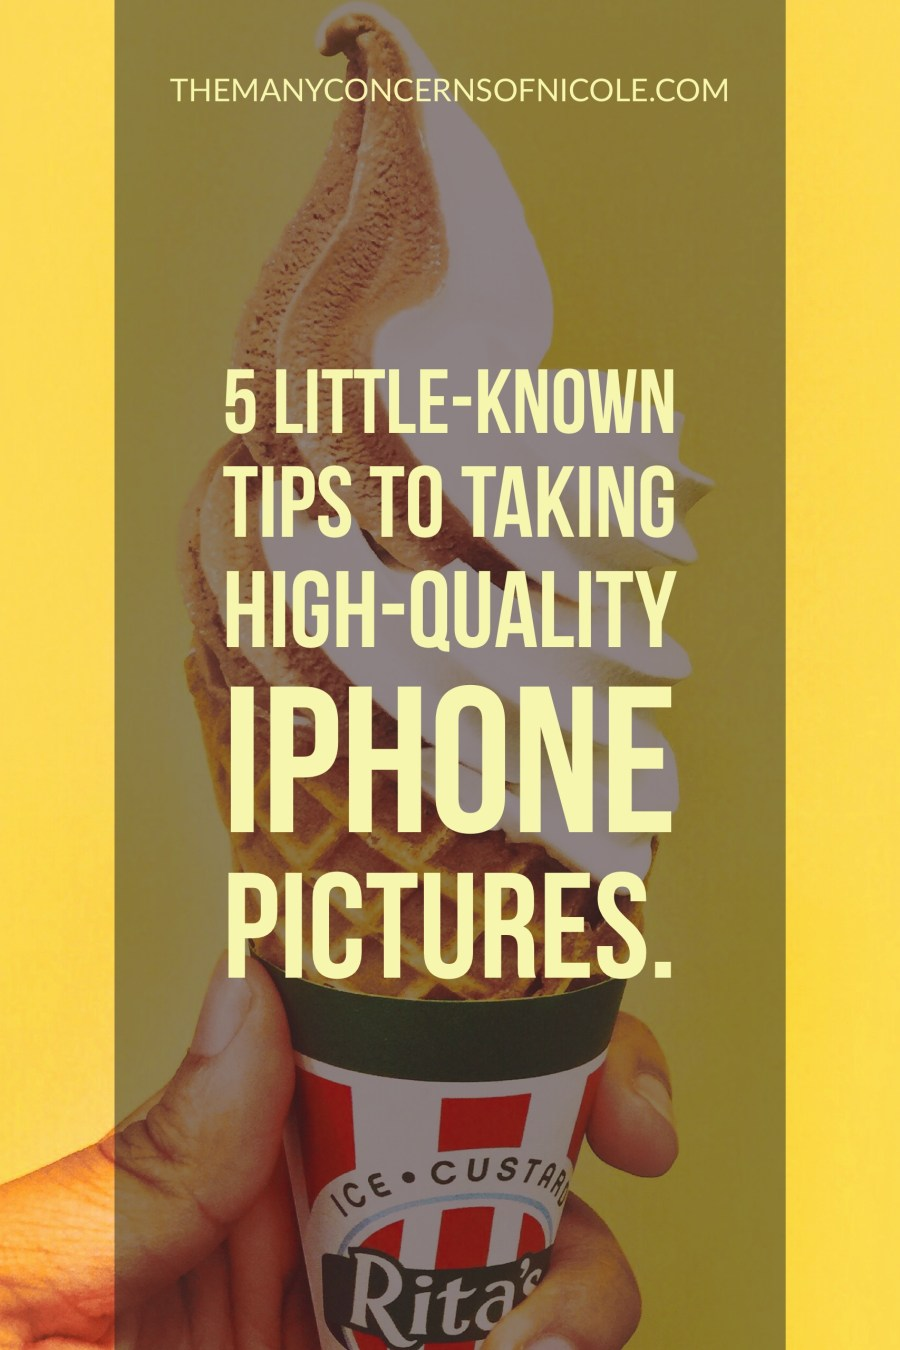 Taking High-Quality iPhone Pictures